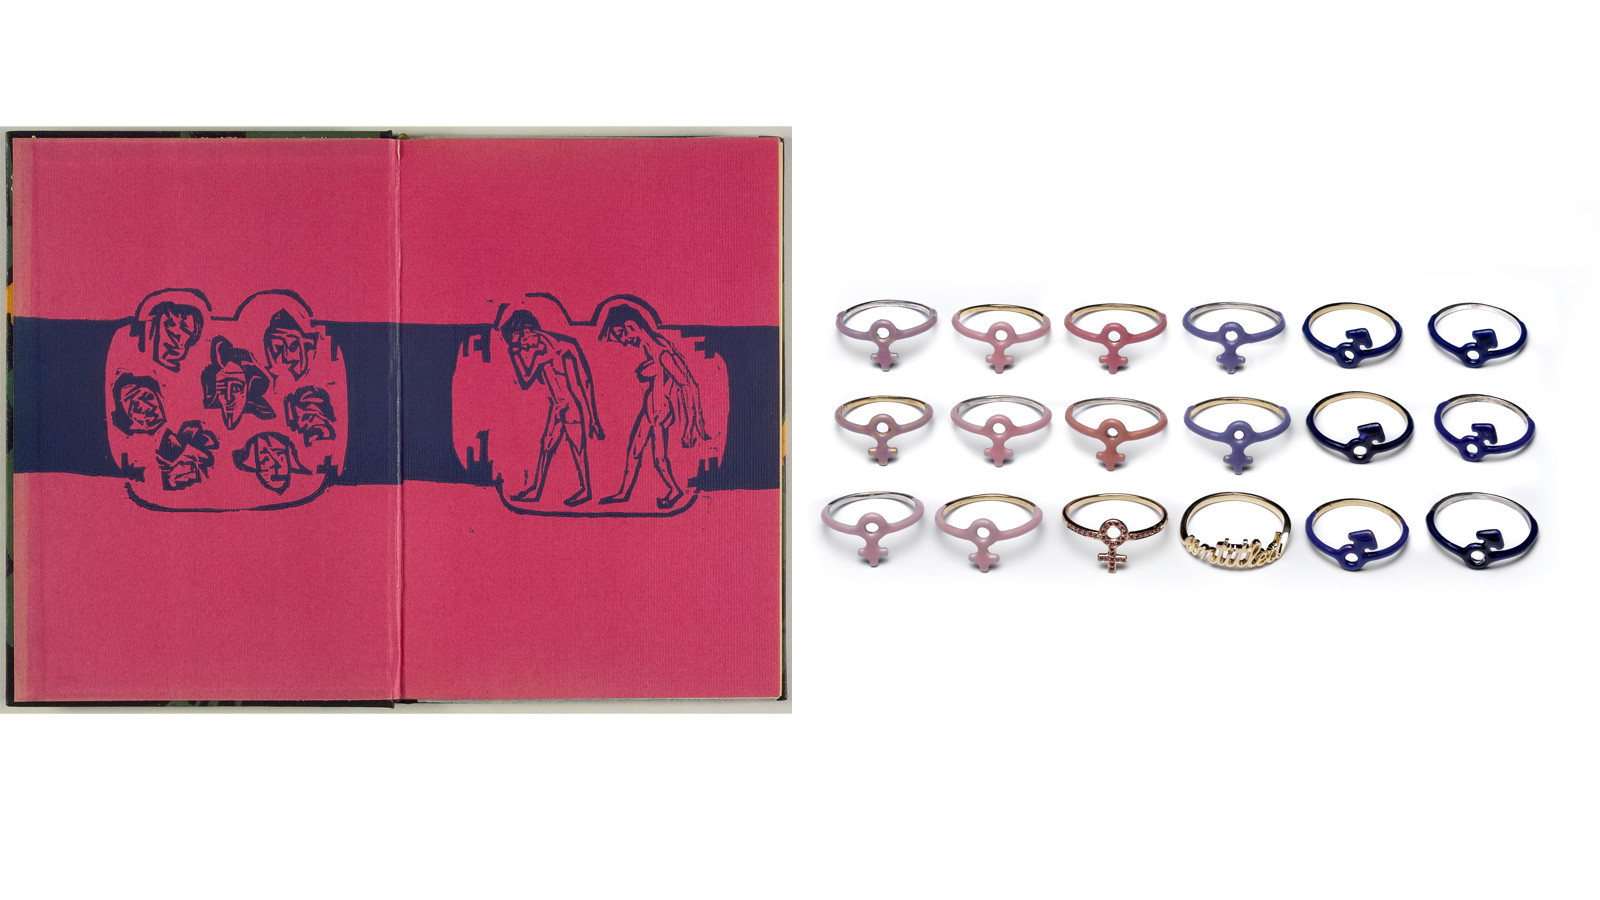 A woodblock print by Ernst Ludwig Kirchner, left, was one of the two works by the German Expressionist that inspired Lena Wald's suite of jewelry, right.